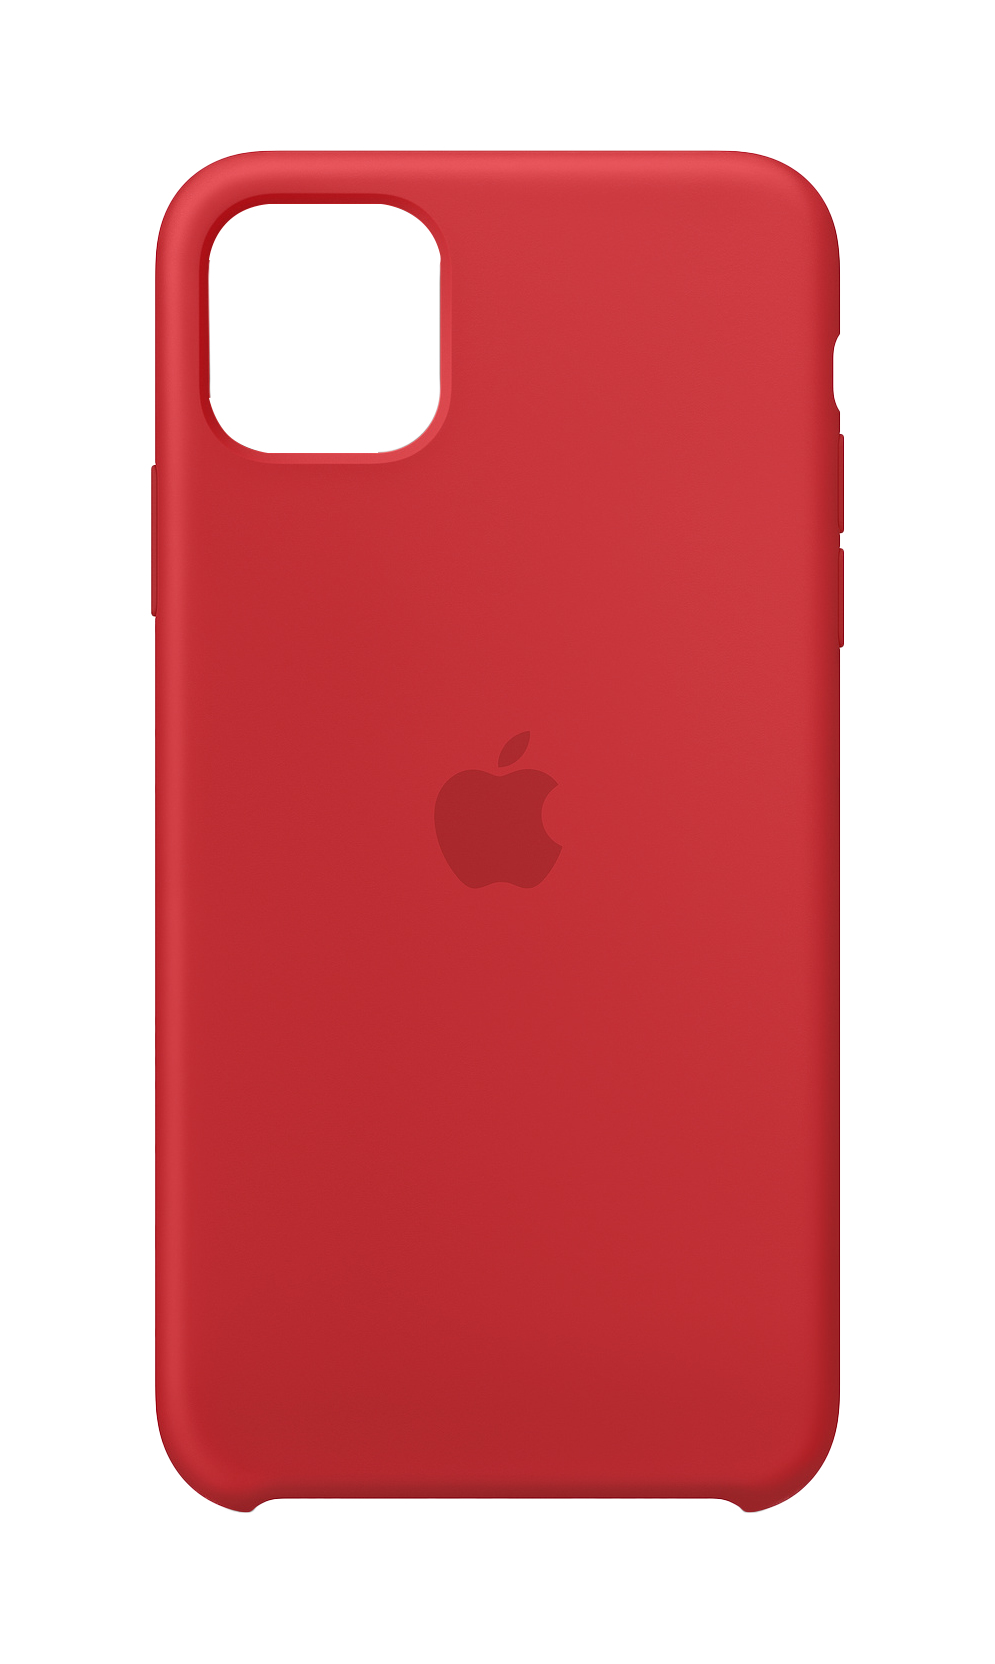 "Apple MWYV2ZM/A mobile phone case 16.5 cm (6.5"") Cover Red"